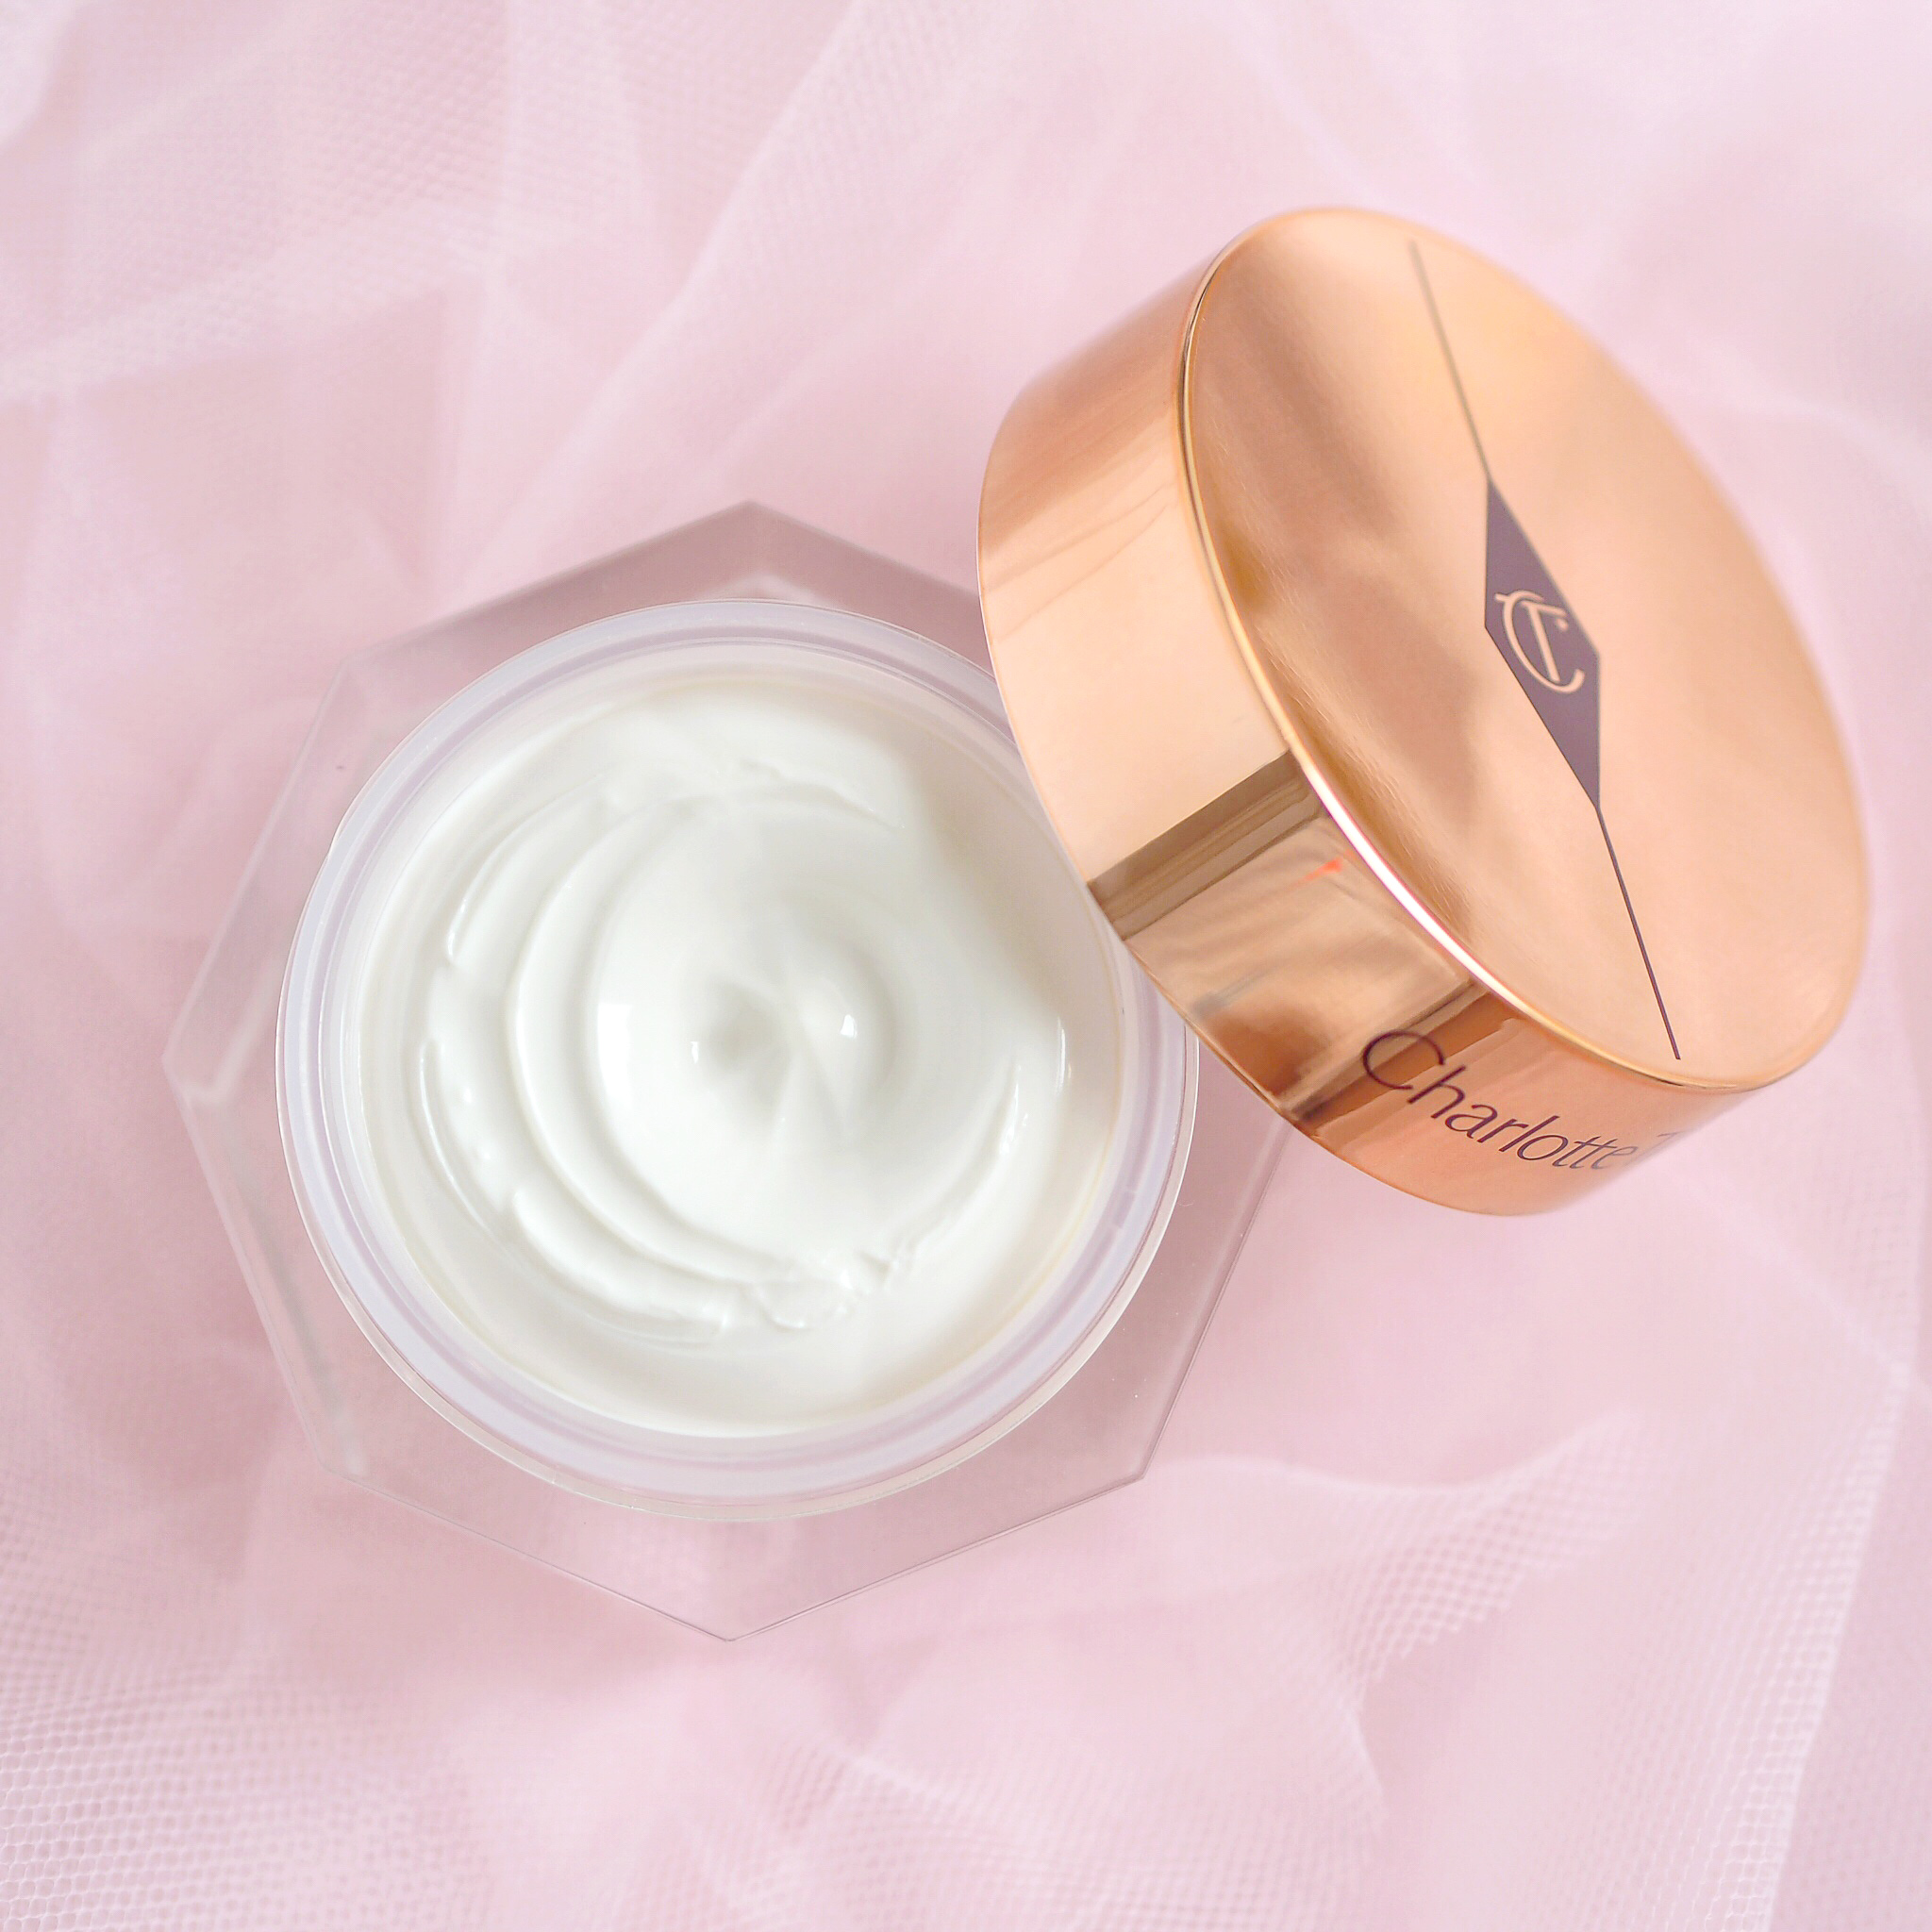 A Charlotte Tilbury Love Story: Why I Adore The Magic Cream | Love Catherine